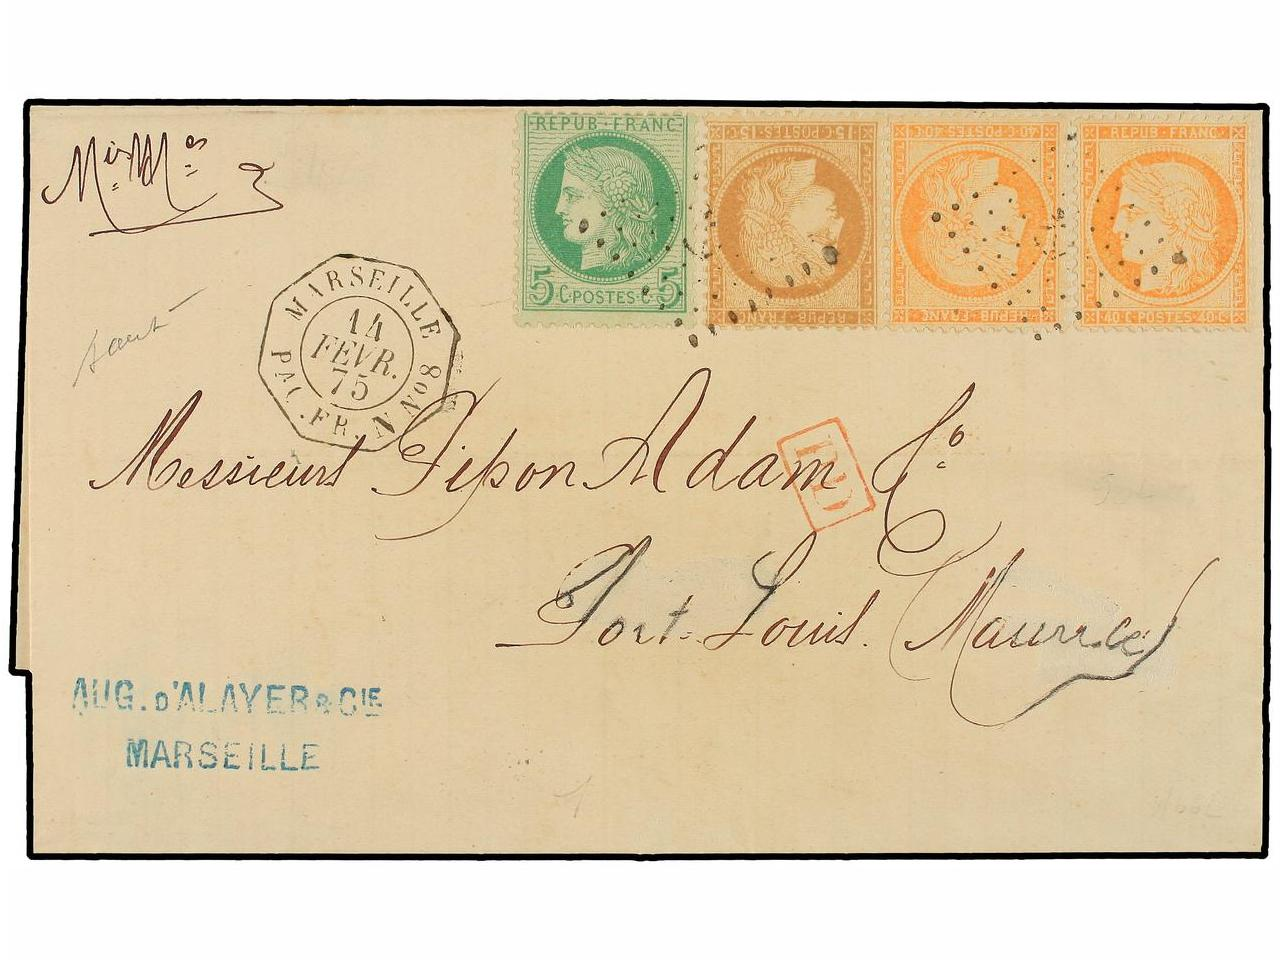 ✉ FRANCIA. Yv. 38 (2), 53, 55. 1875 (Feb. 14). Cover from MA